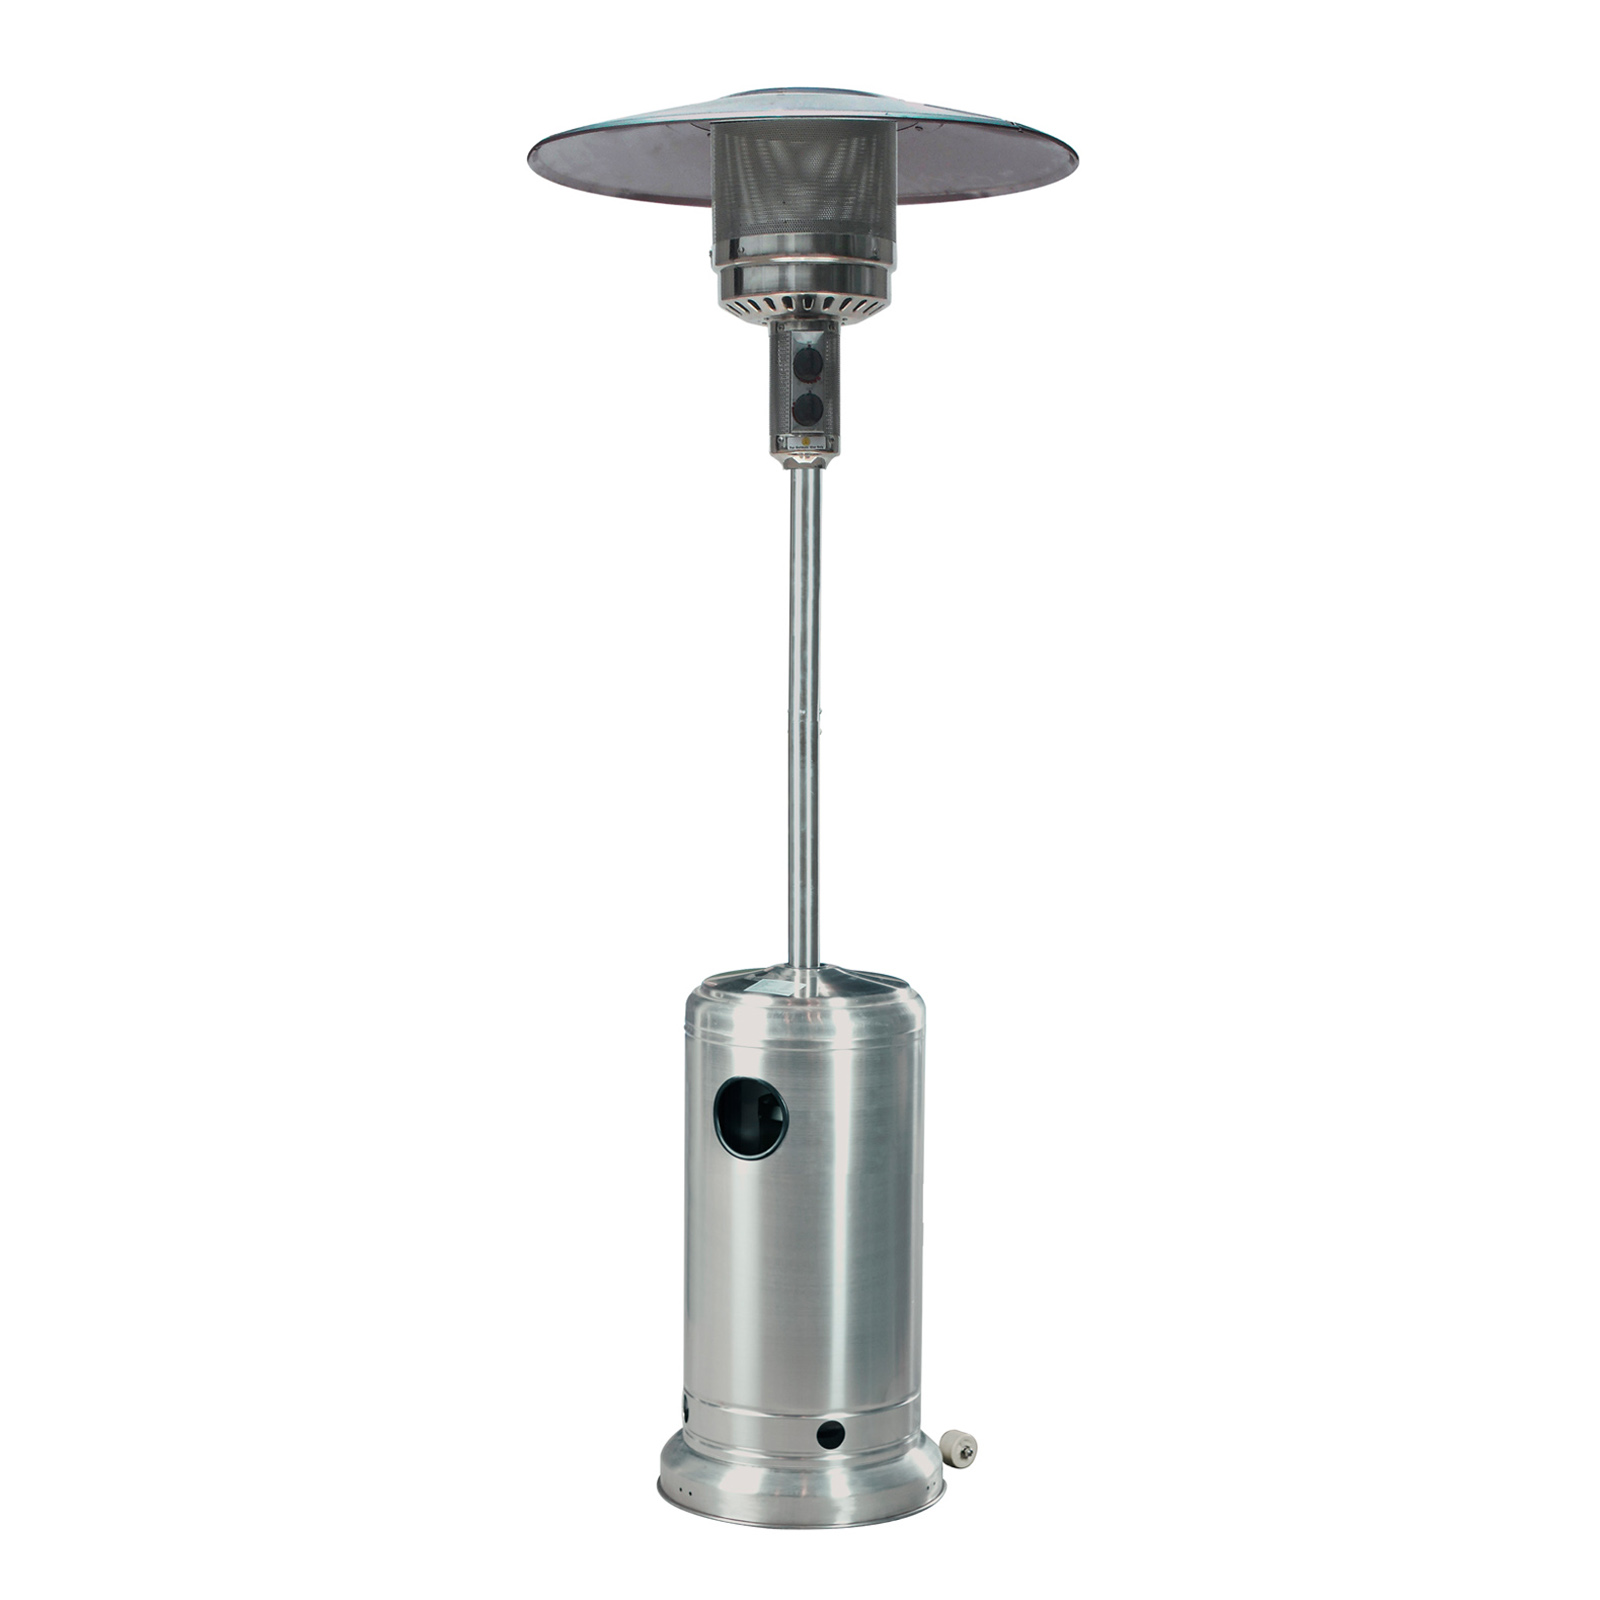 Outdoor Patio Mushroom Gas Heater AirXpress Hire